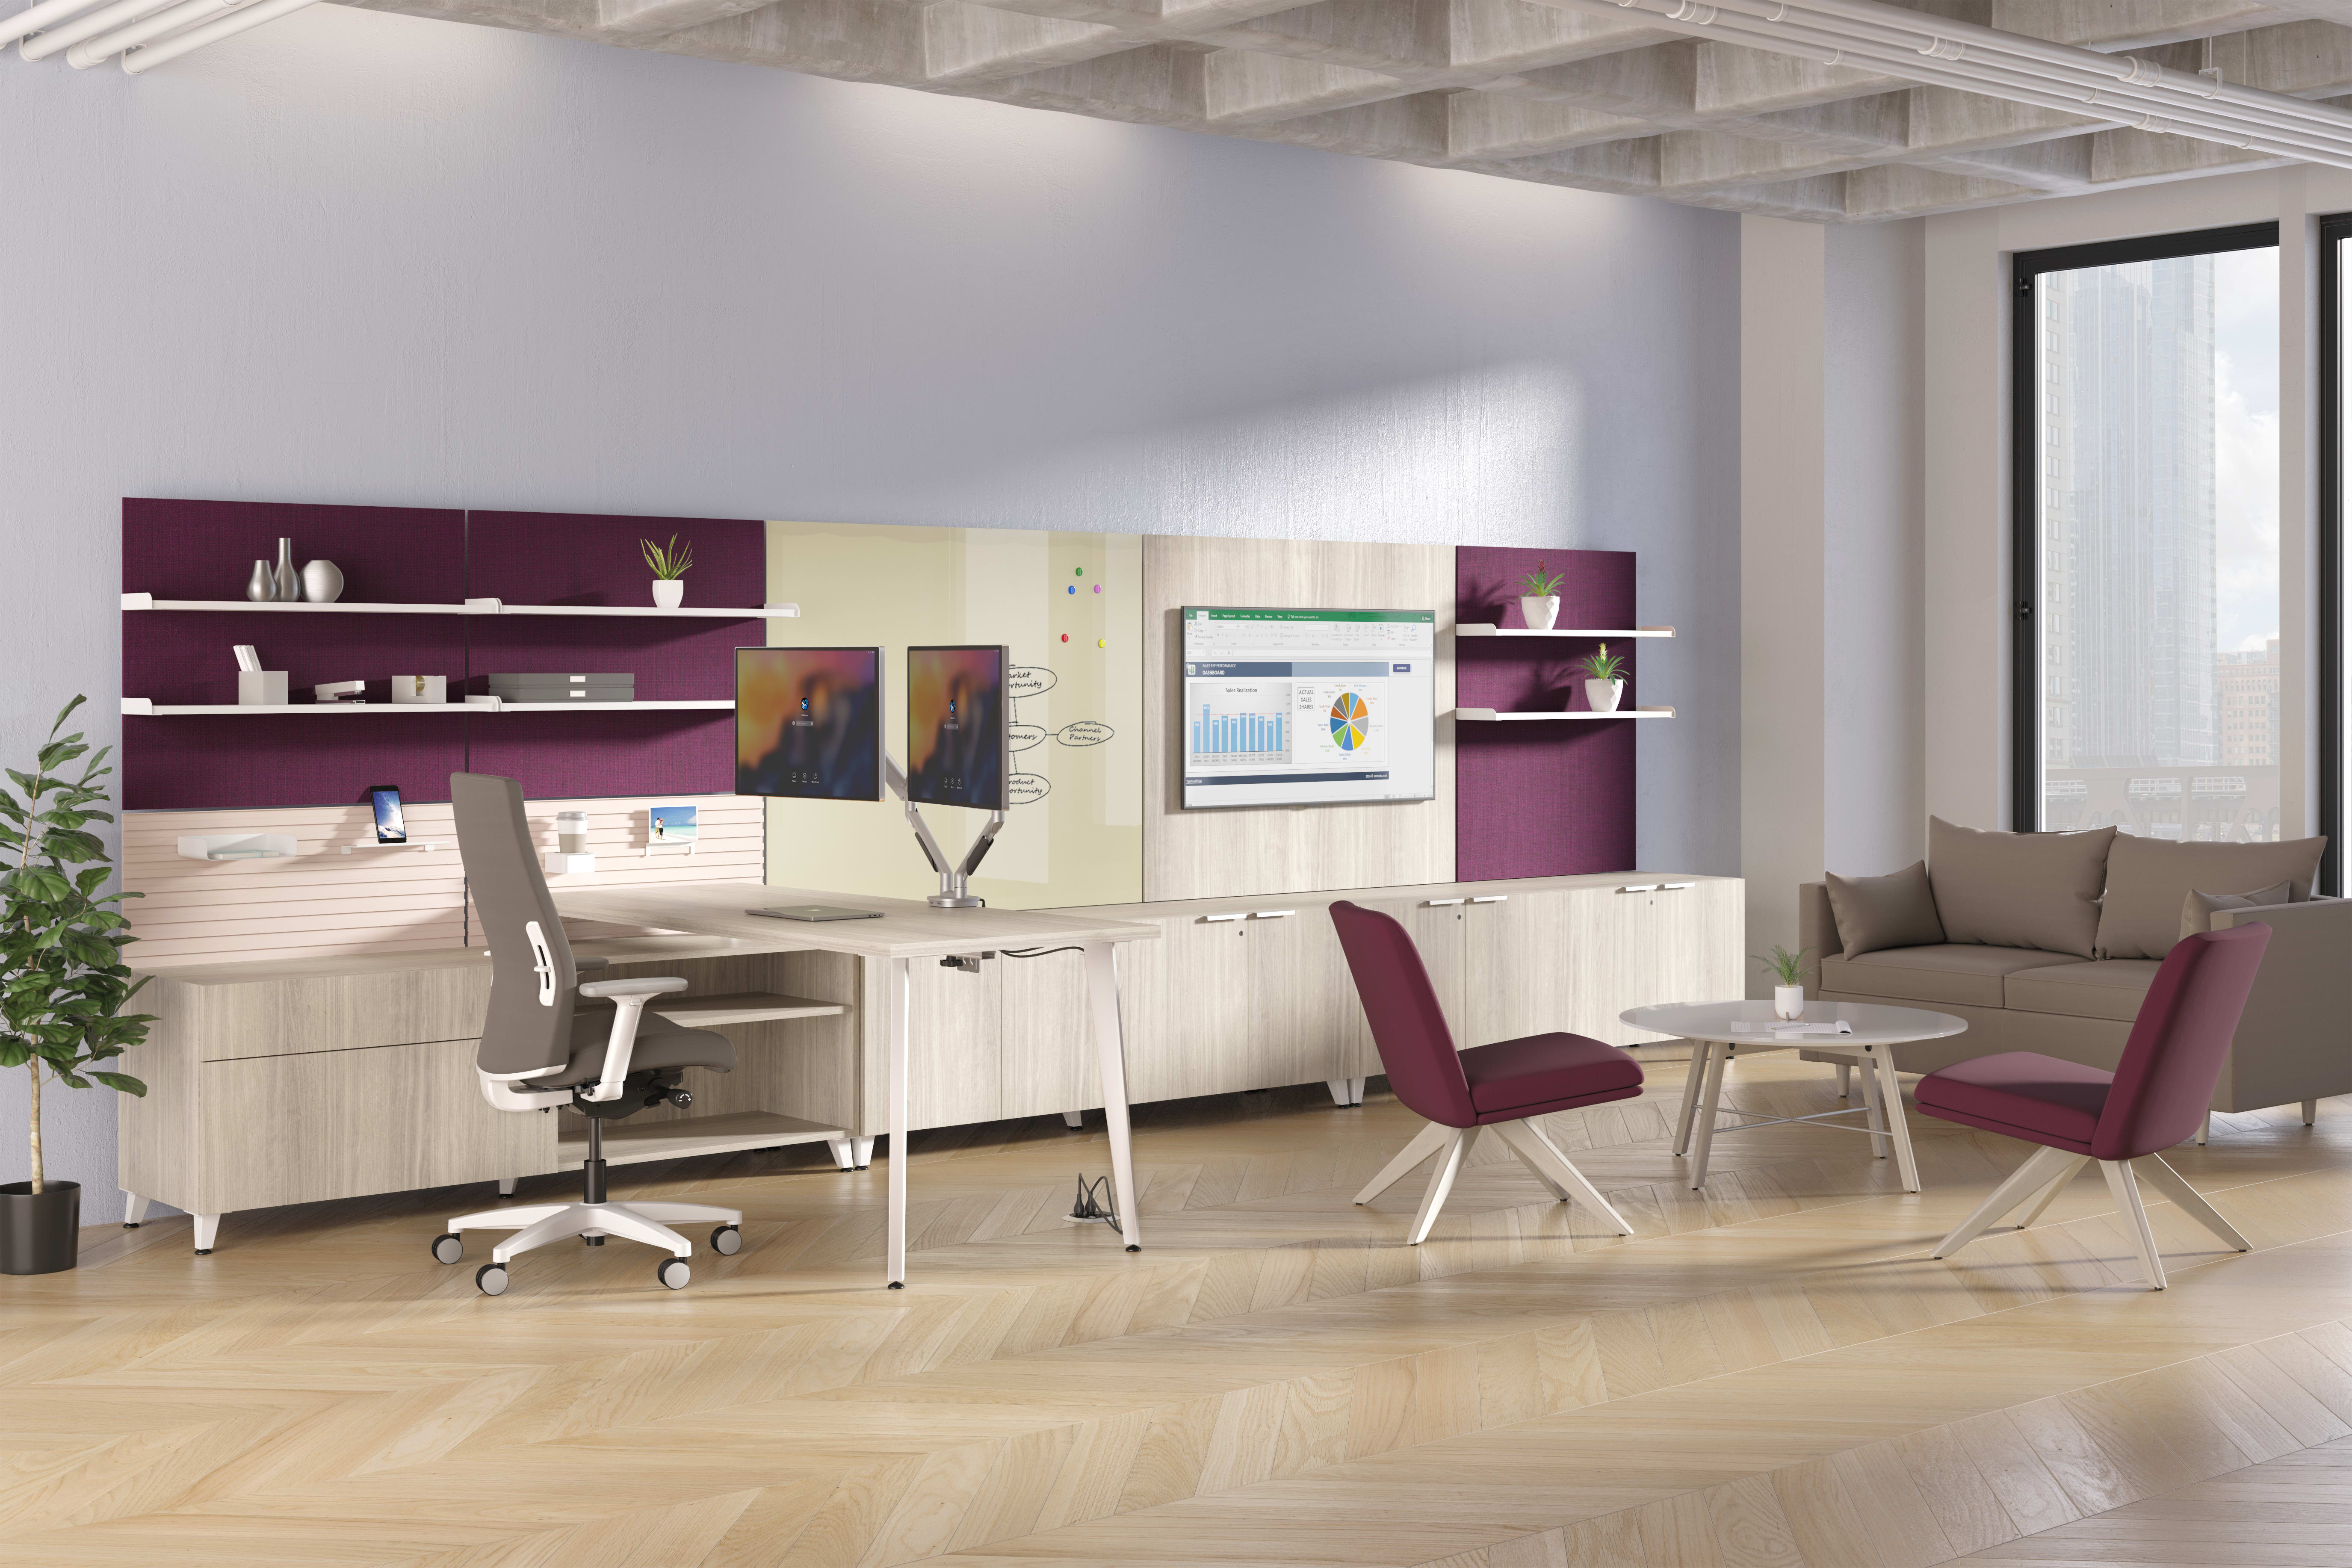 Voi large private office with Workwall tiles and Ignition, Mav, Astir, West Hill seating